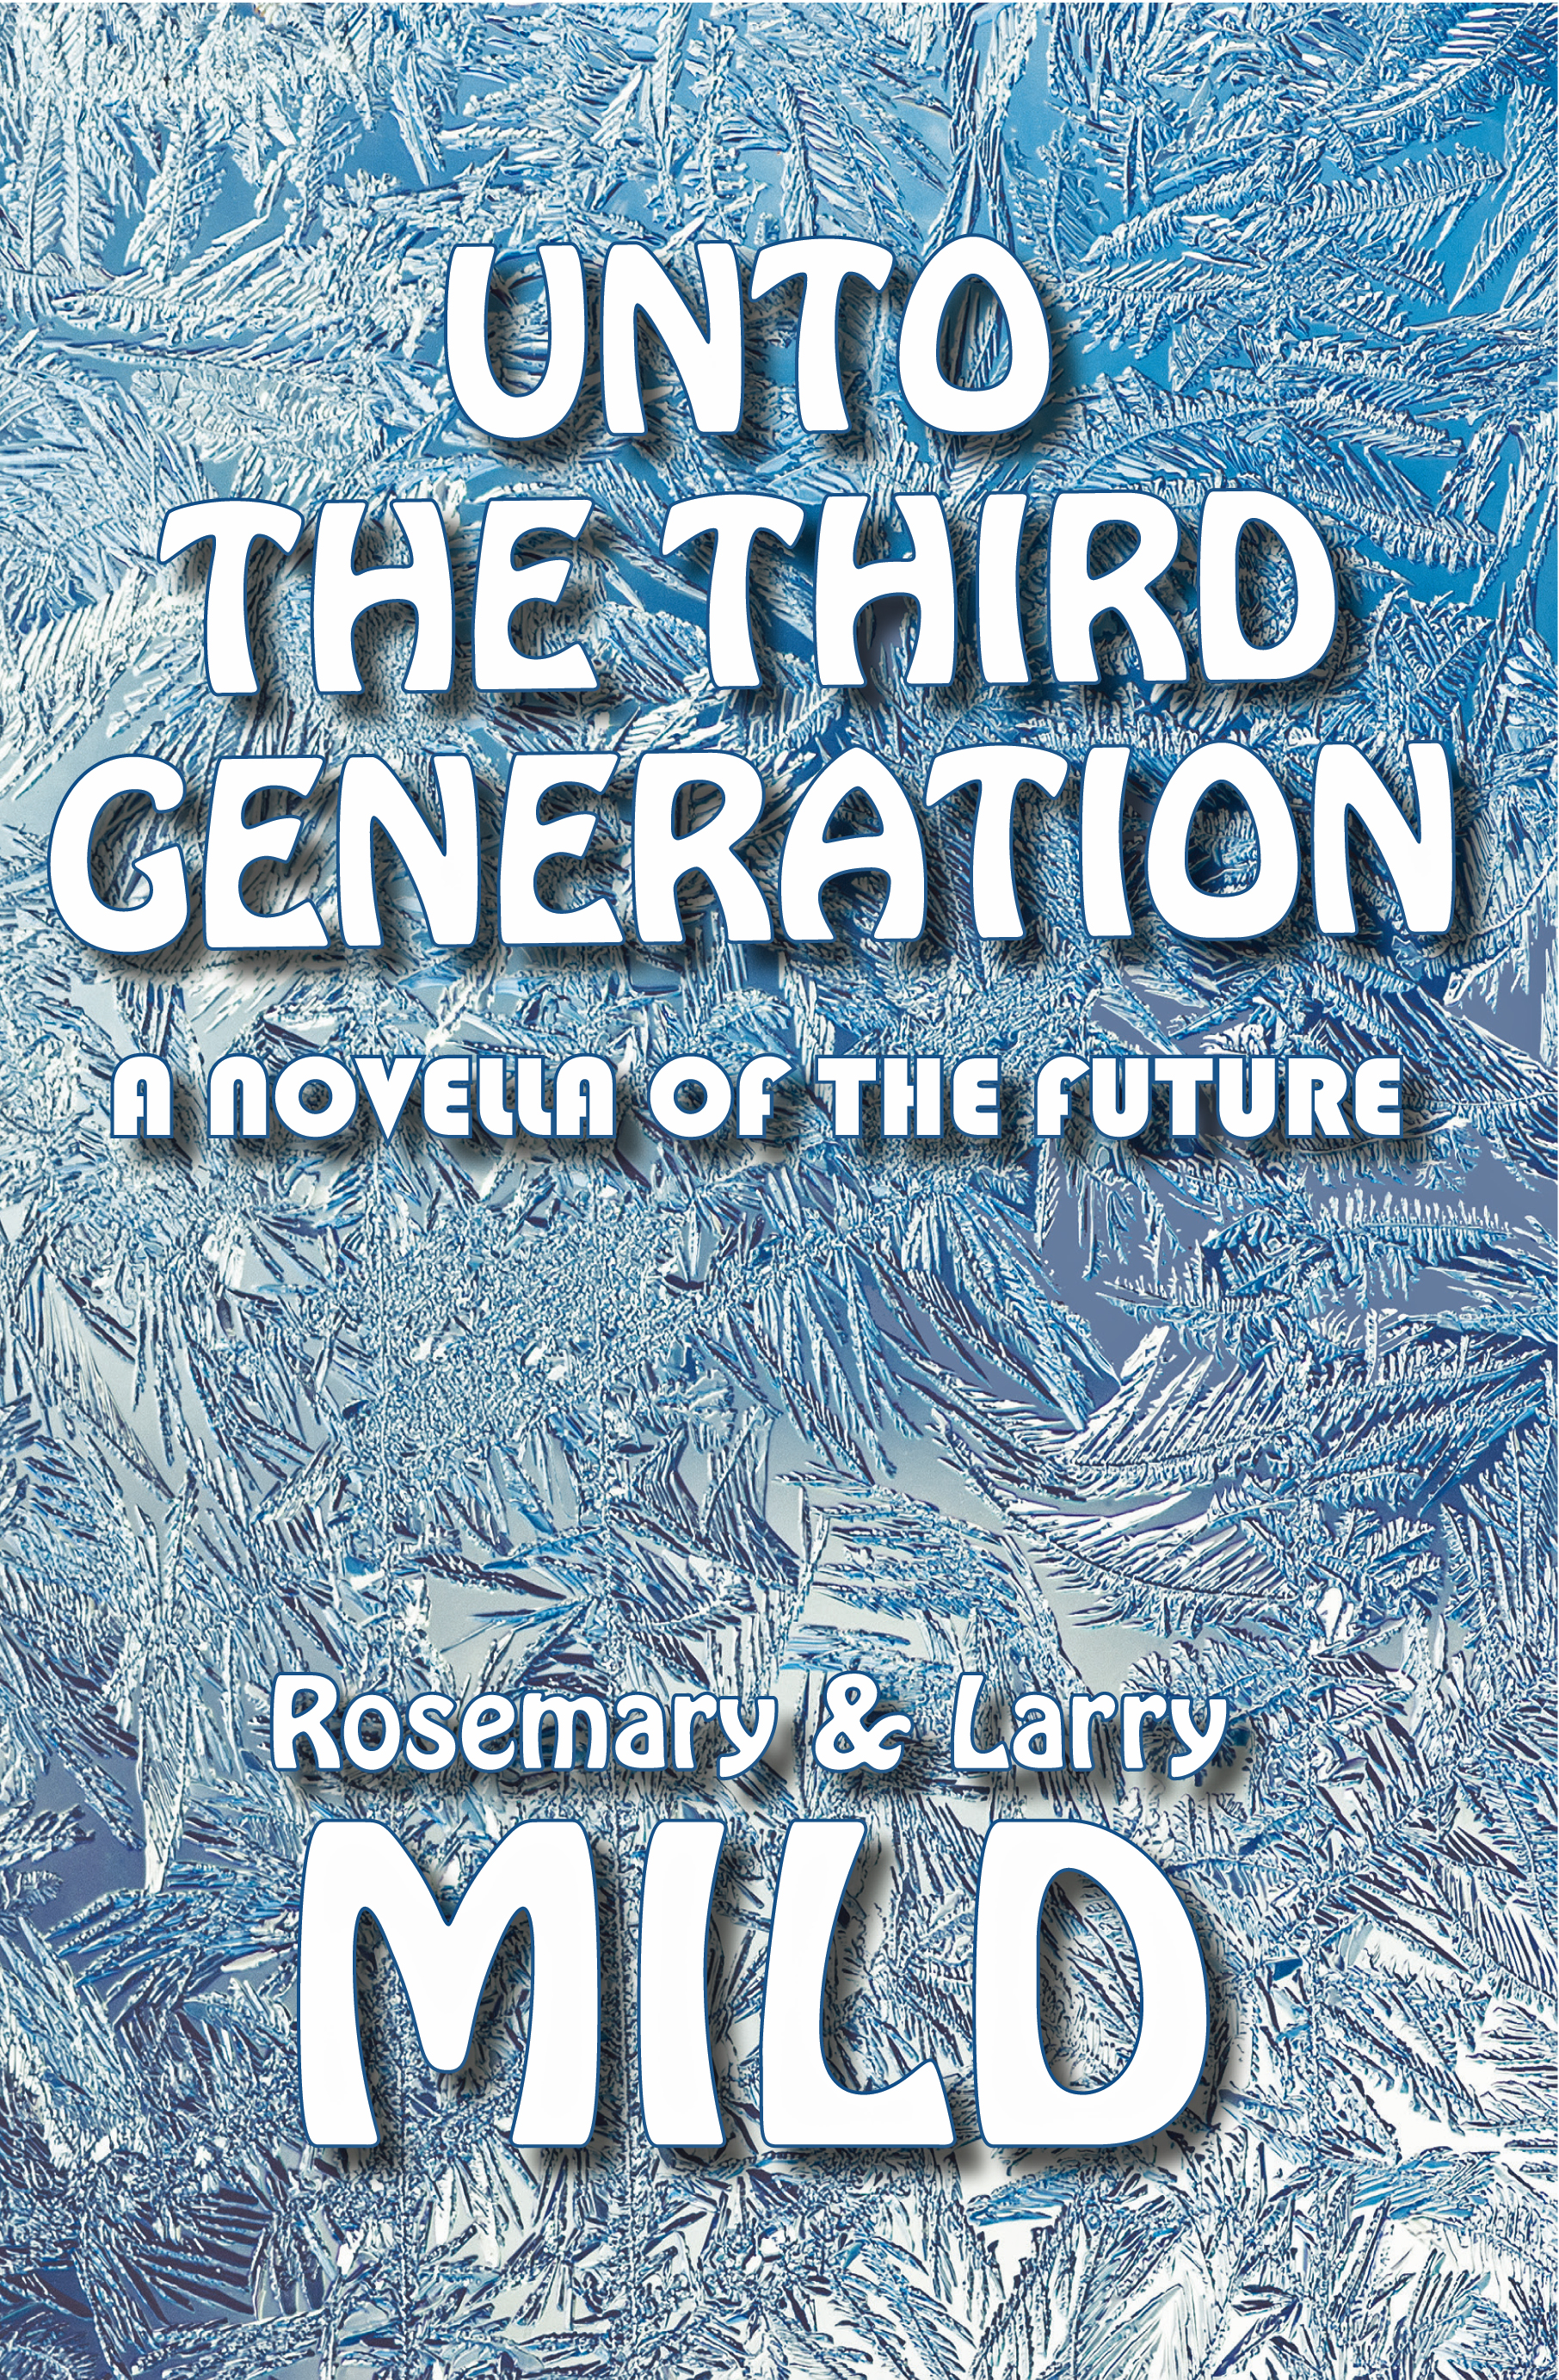 Unto the Third Generation, A Novella of the Future by Rosemary and Larry Mild